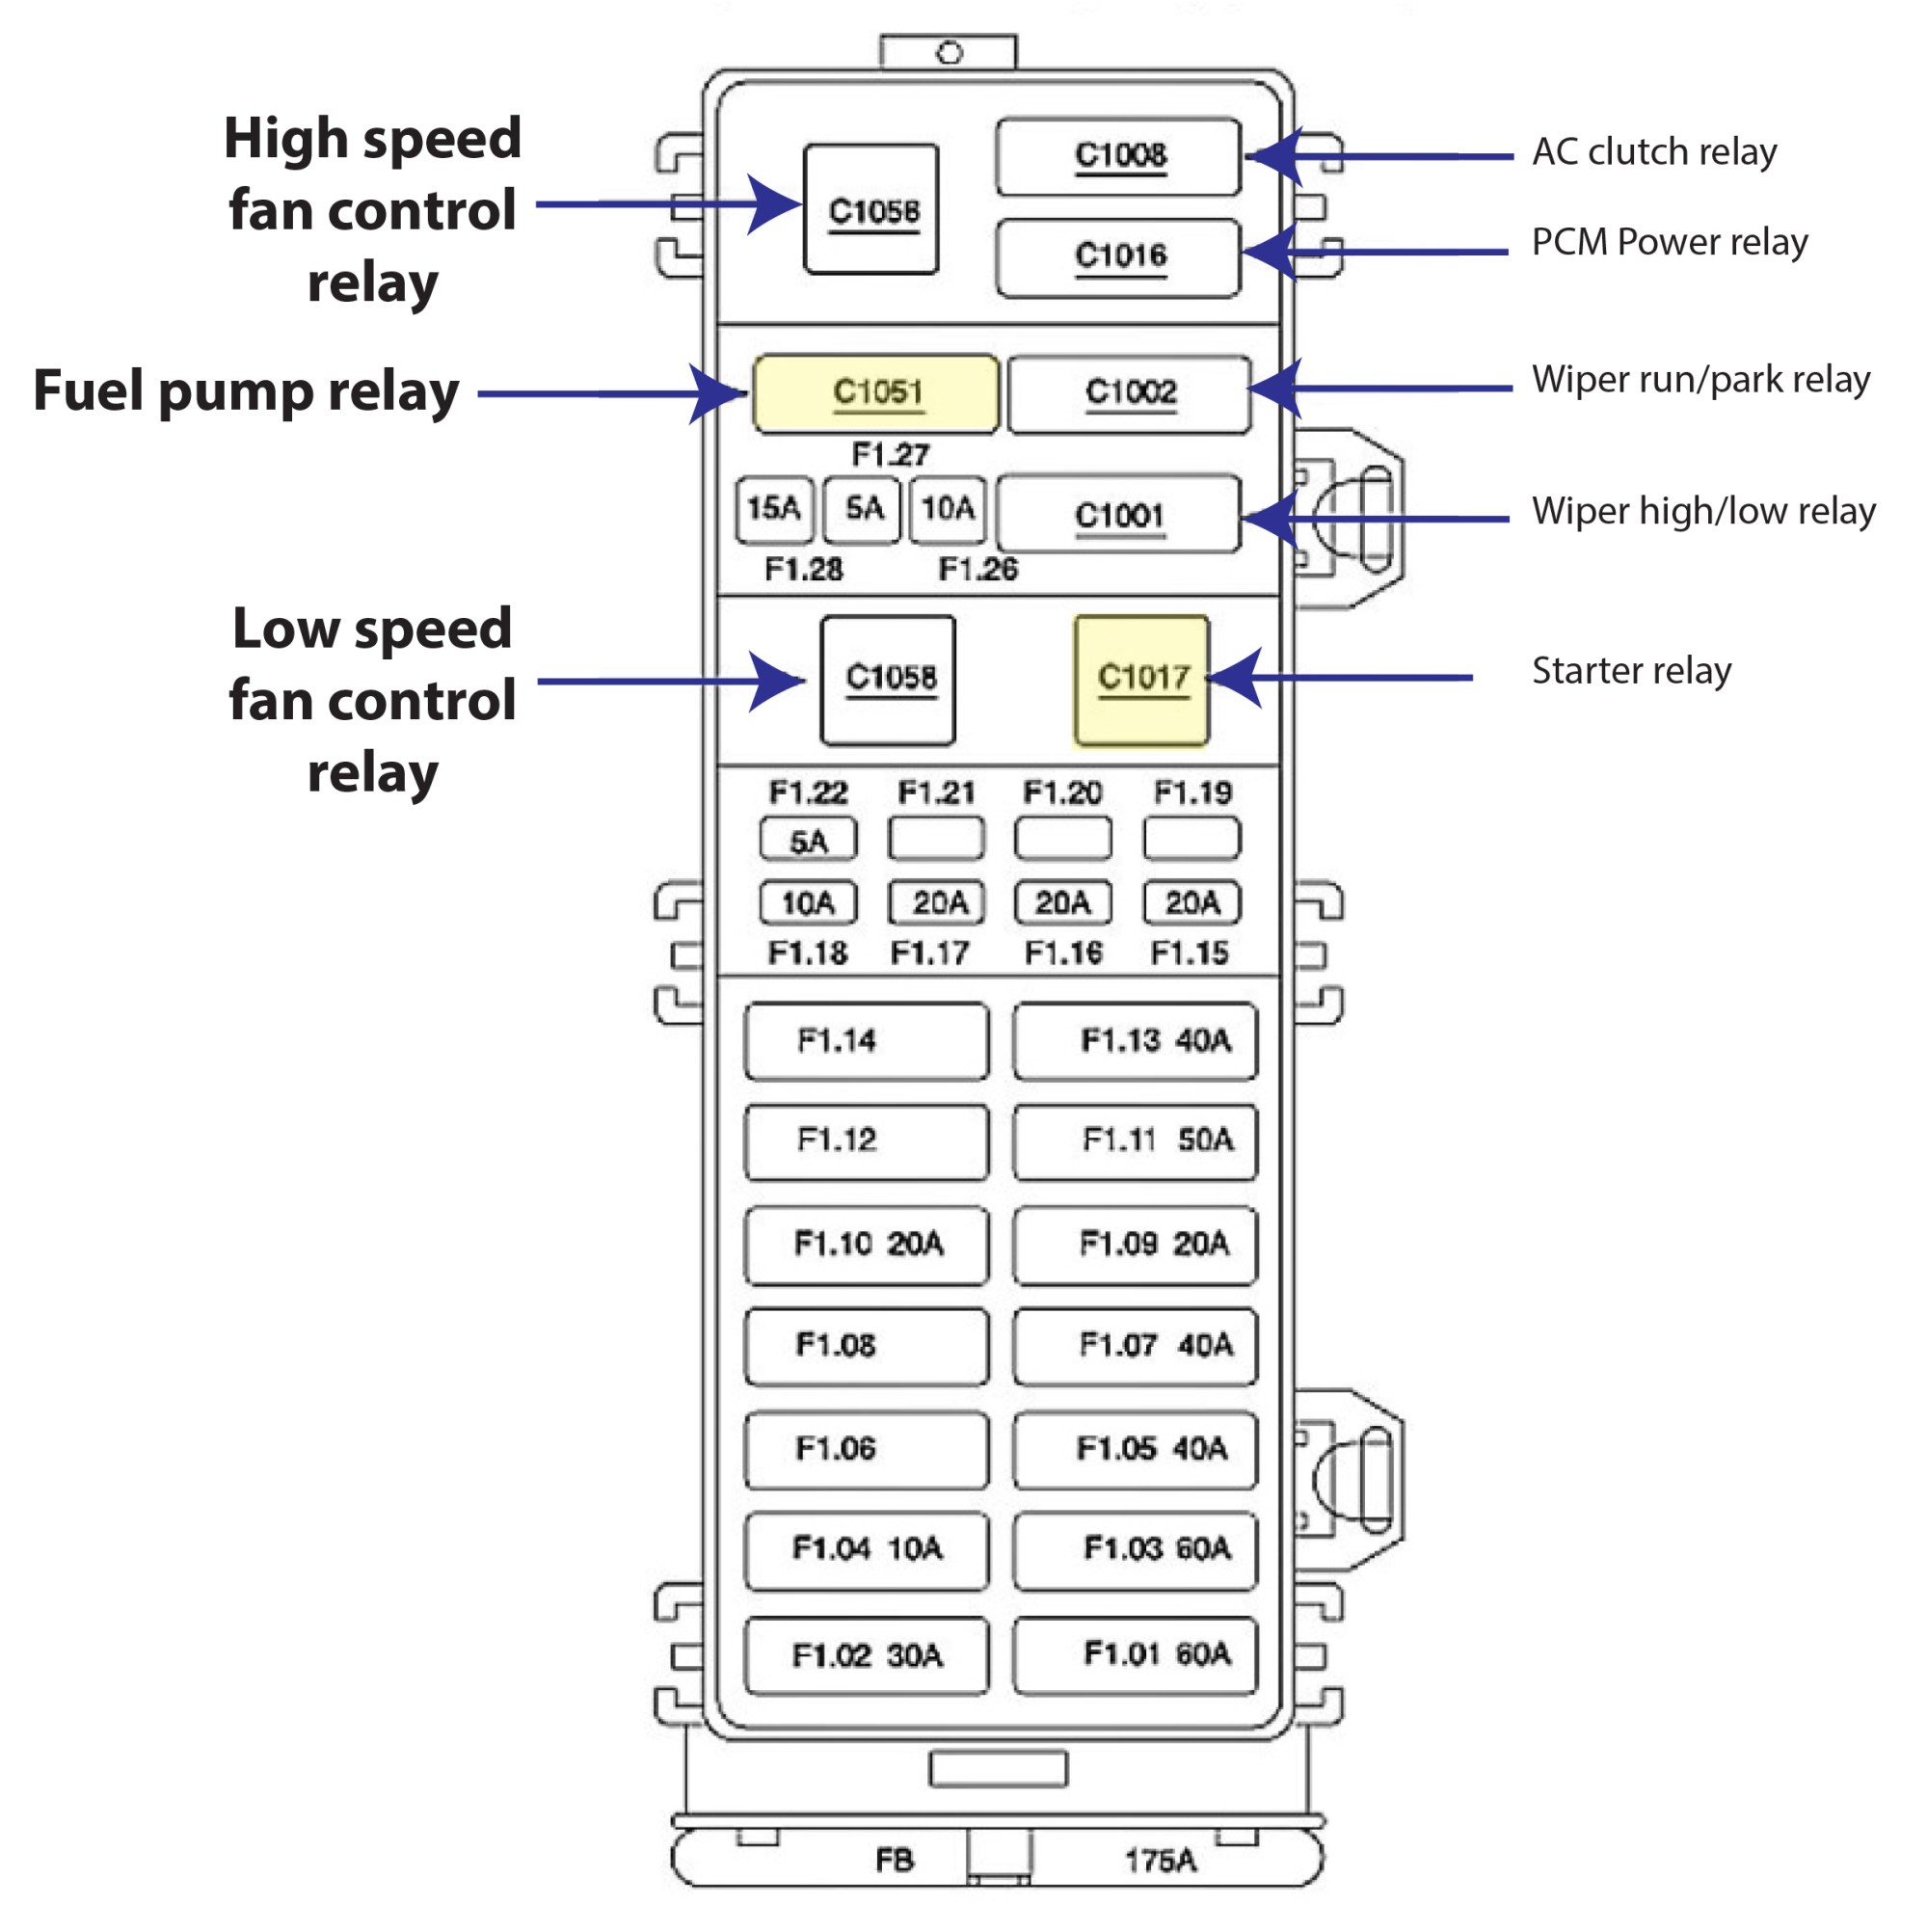 hight resolution of airbag wiring diagram ford taurus radio just another wiring 2003 taurus fuse diagram wiring diagram ford